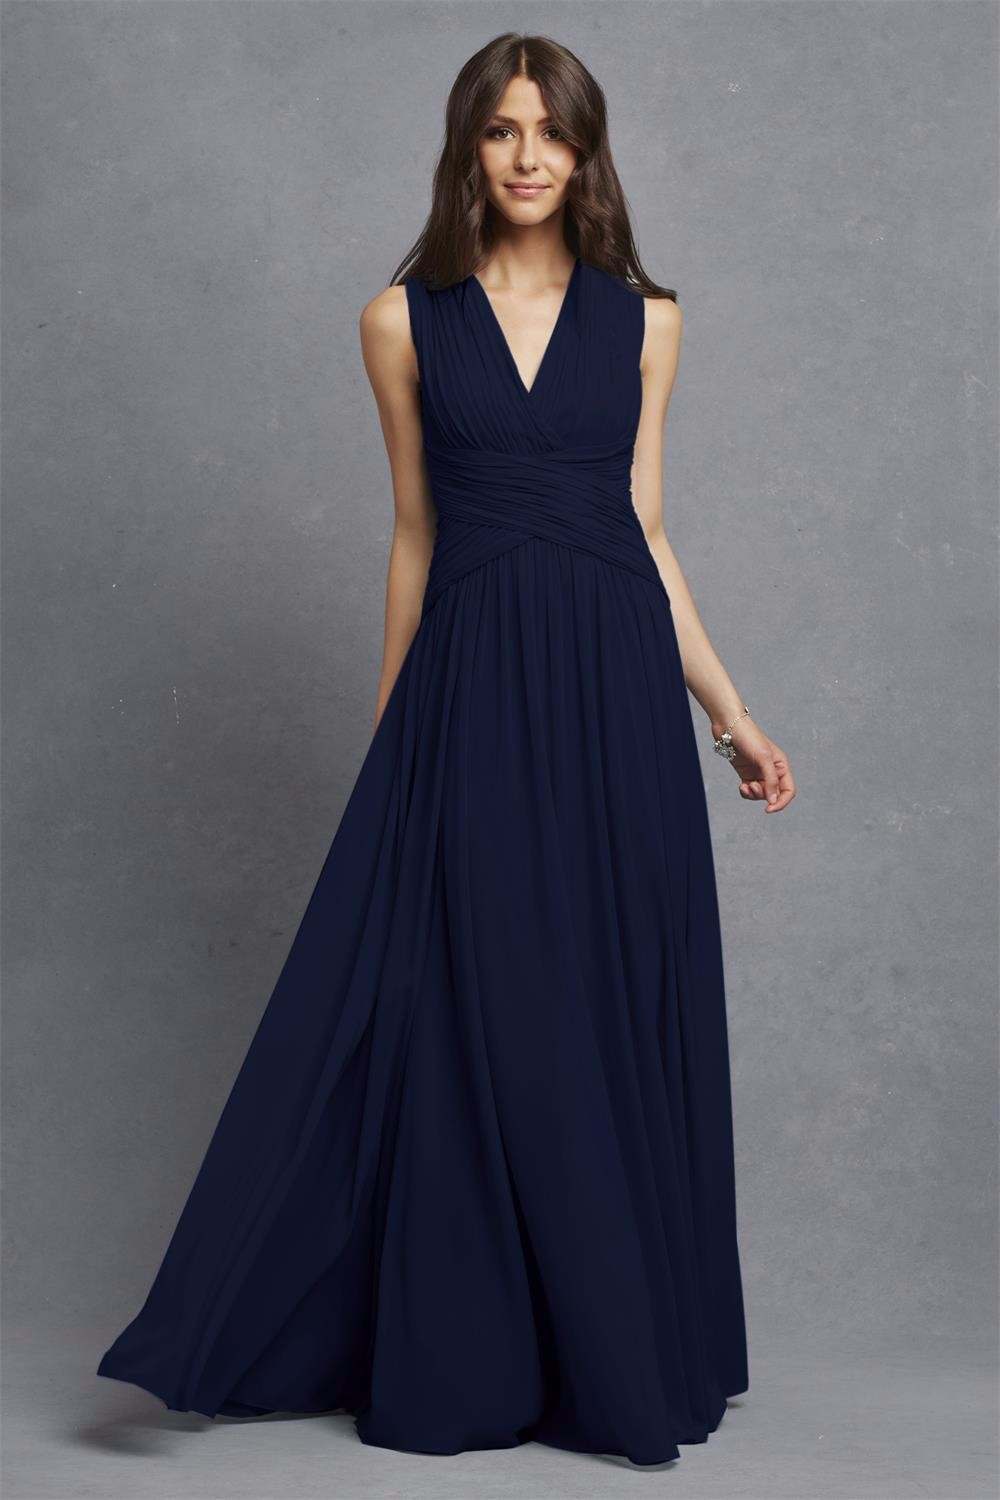 Online get cheap navy blue floor length bridesmaid dresses sa153 v neck chiffon navy blue long floor length cheap bridesmaid dresses 2016china ombrellifo Image collections